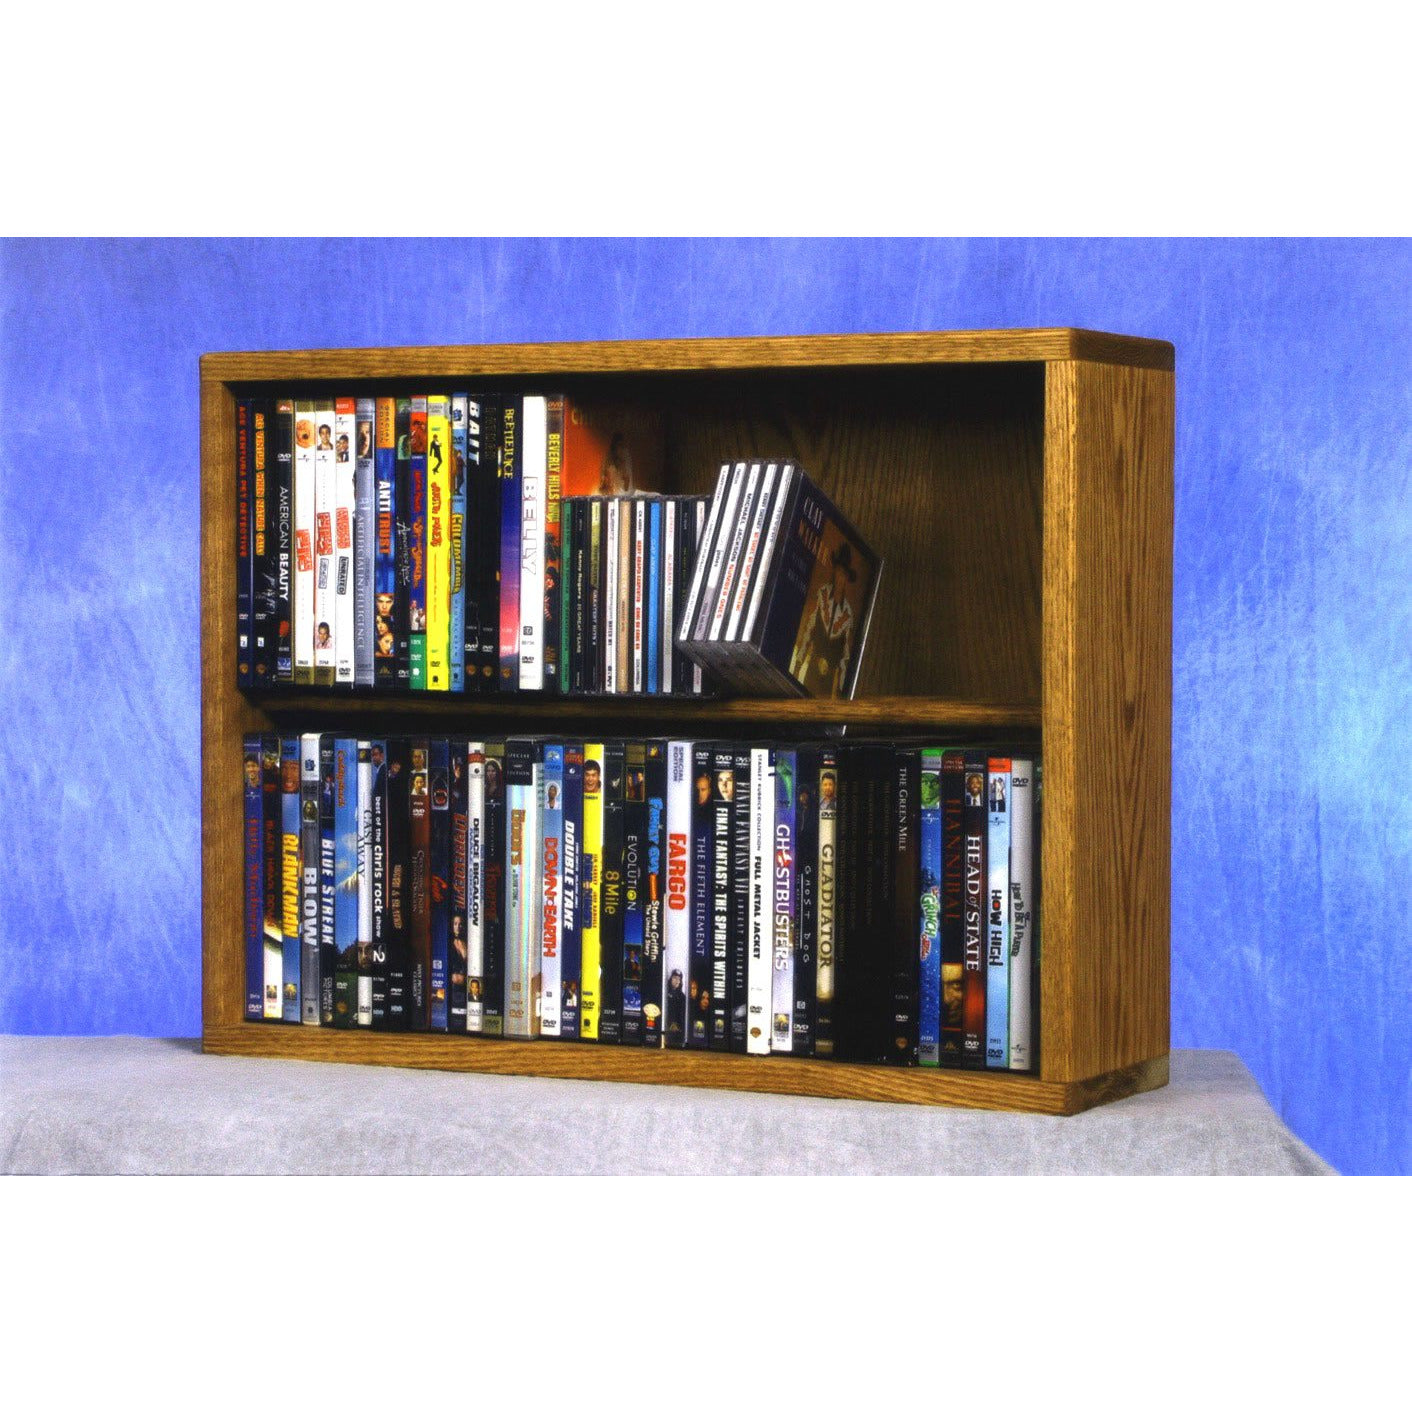 Model 215-24 CD/DVD/VHS Combination Cabinet - honey oak